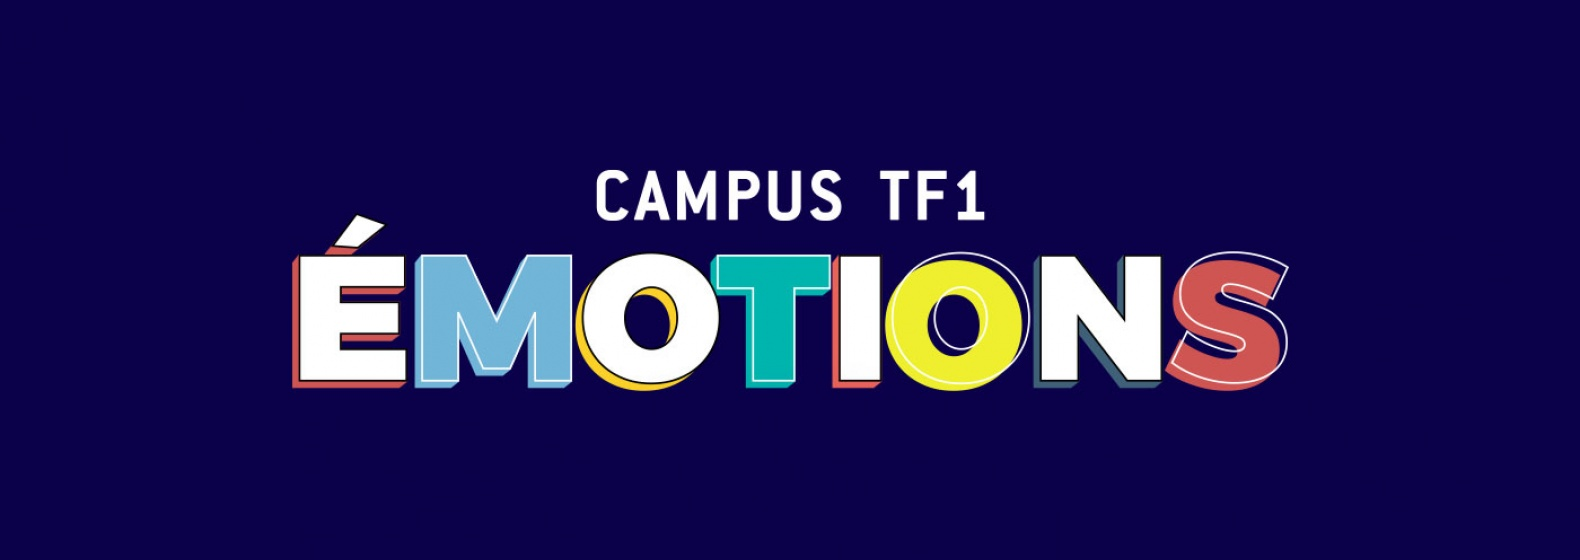 Campus TF1 Émotions 2017